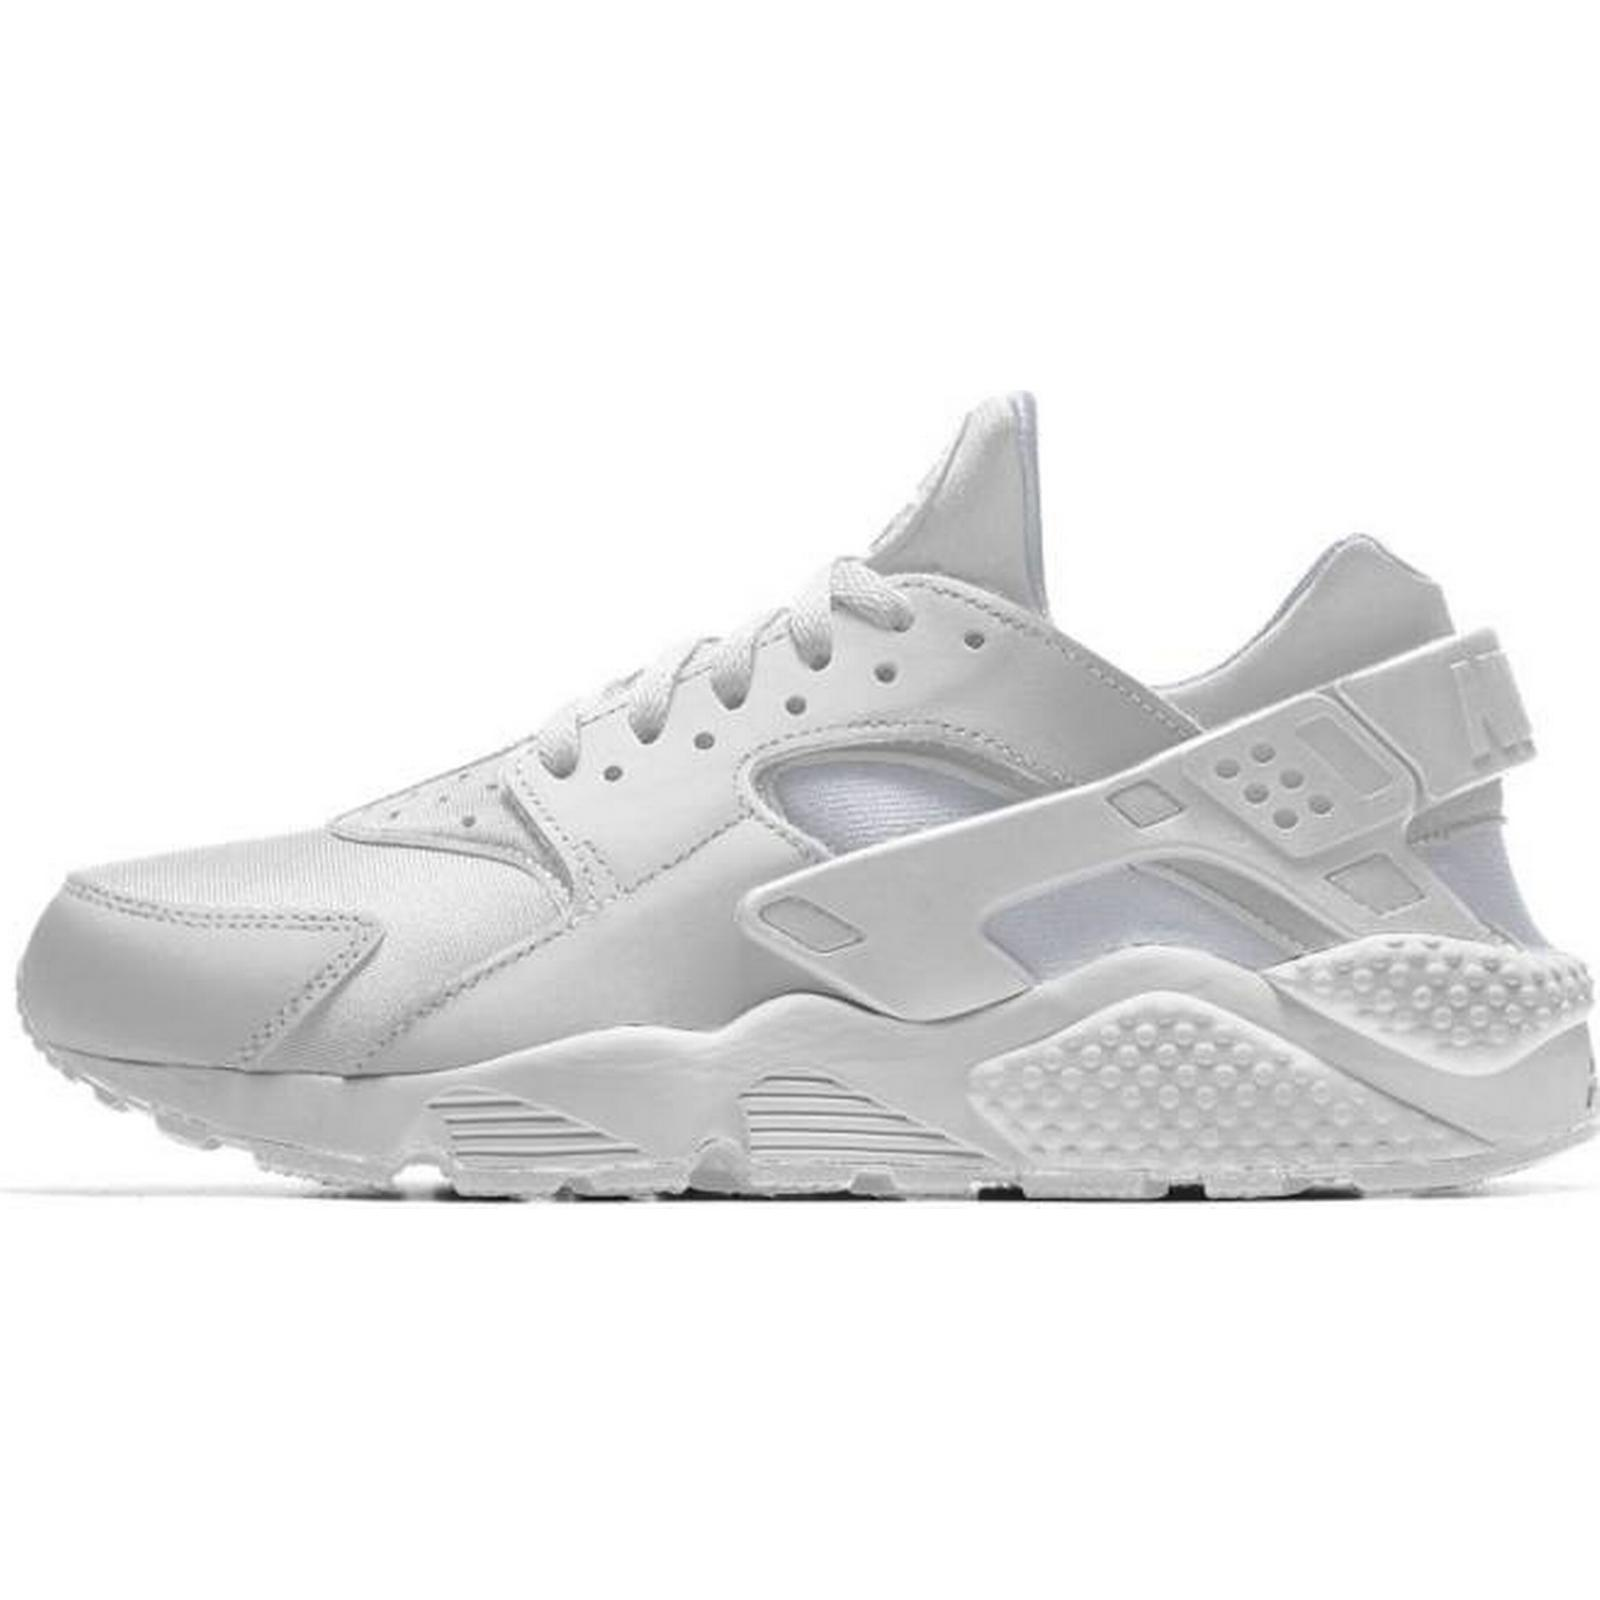 promo code 9ec57 093e4 ... white black a3fc7 8d86f  canada mans womans nike nike buty mskie nike  mans womans air huarache id good global goods